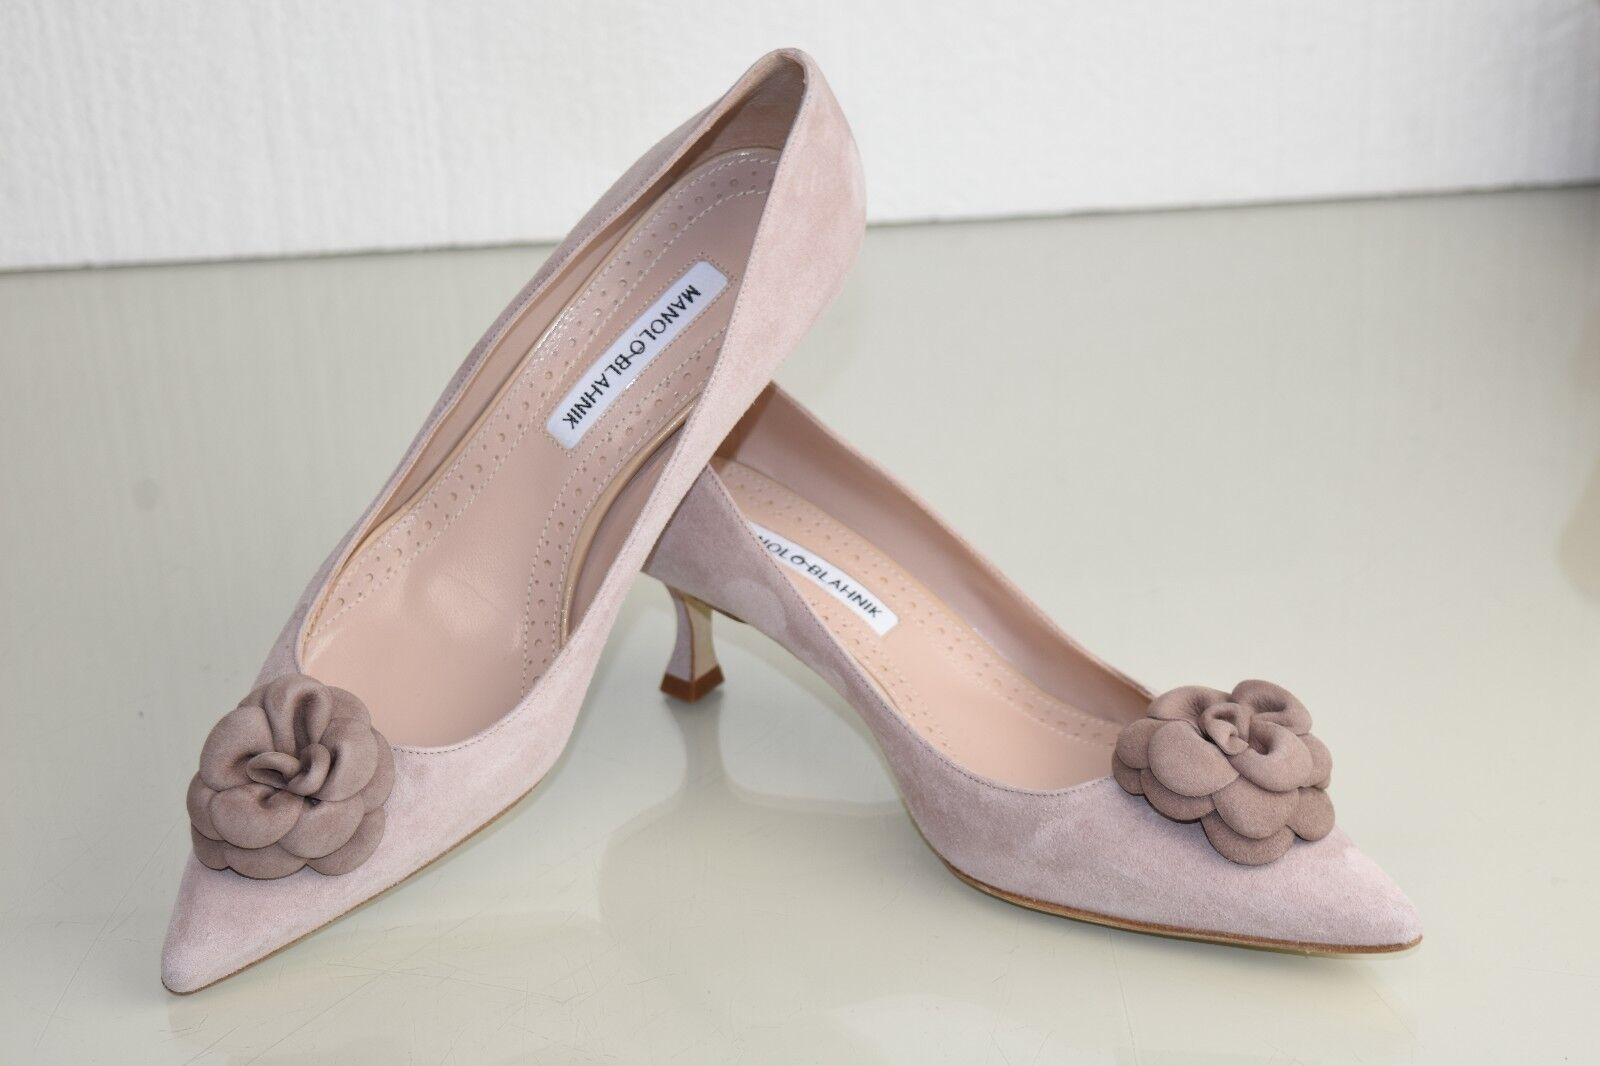 755 NEW MANOLO BLAHNIK Camelia Camelia Camelia BB 50 ROSE Suede  Kitten Heels chaussures 39.5 40 41 456e75